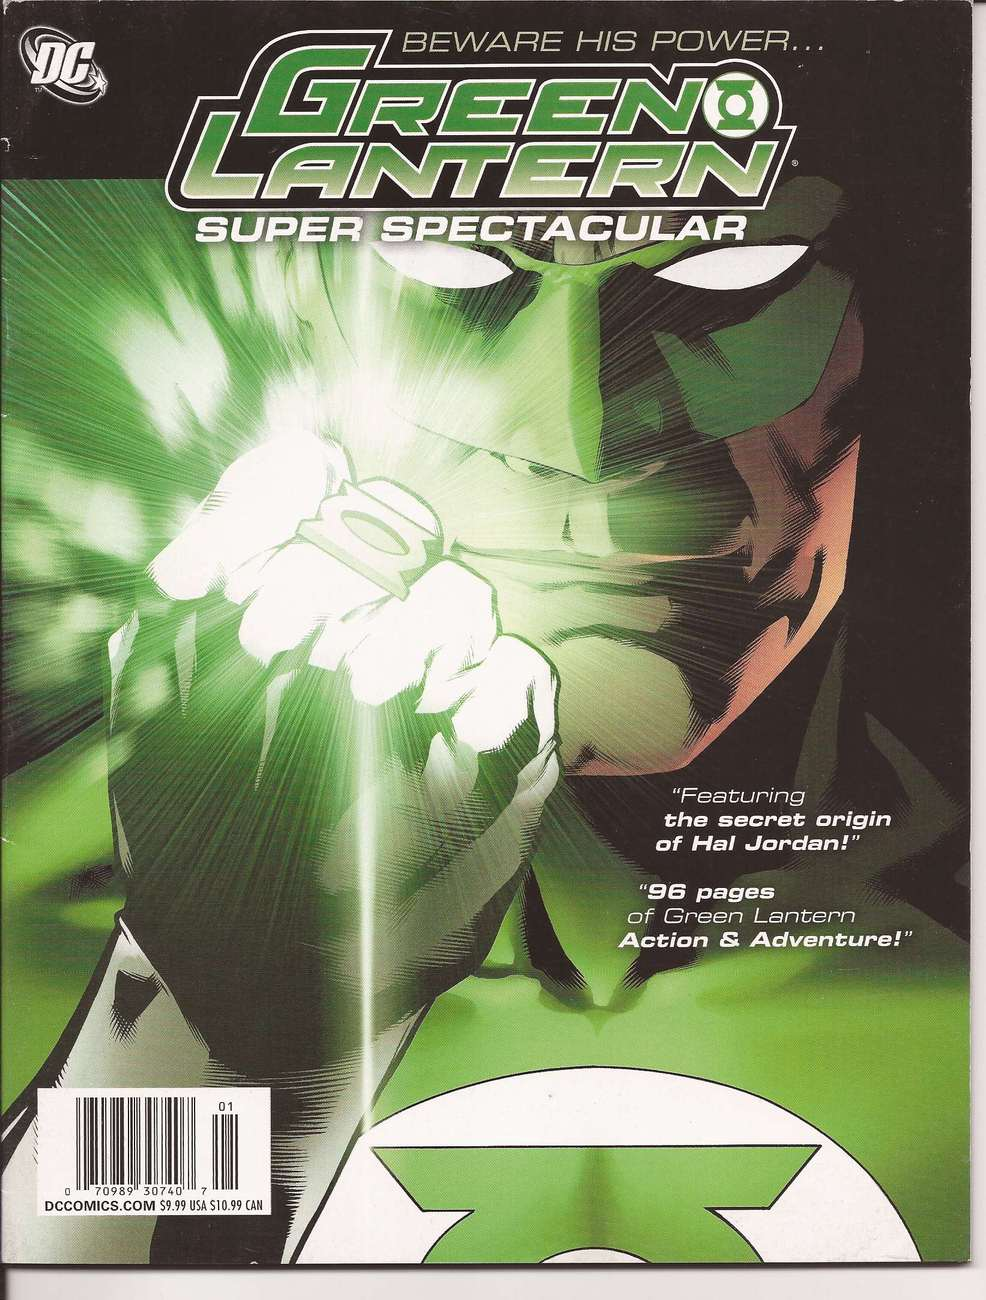 Green Lantern Super Spectacular Secret Origin Of Hal Jordan Alienated Flight